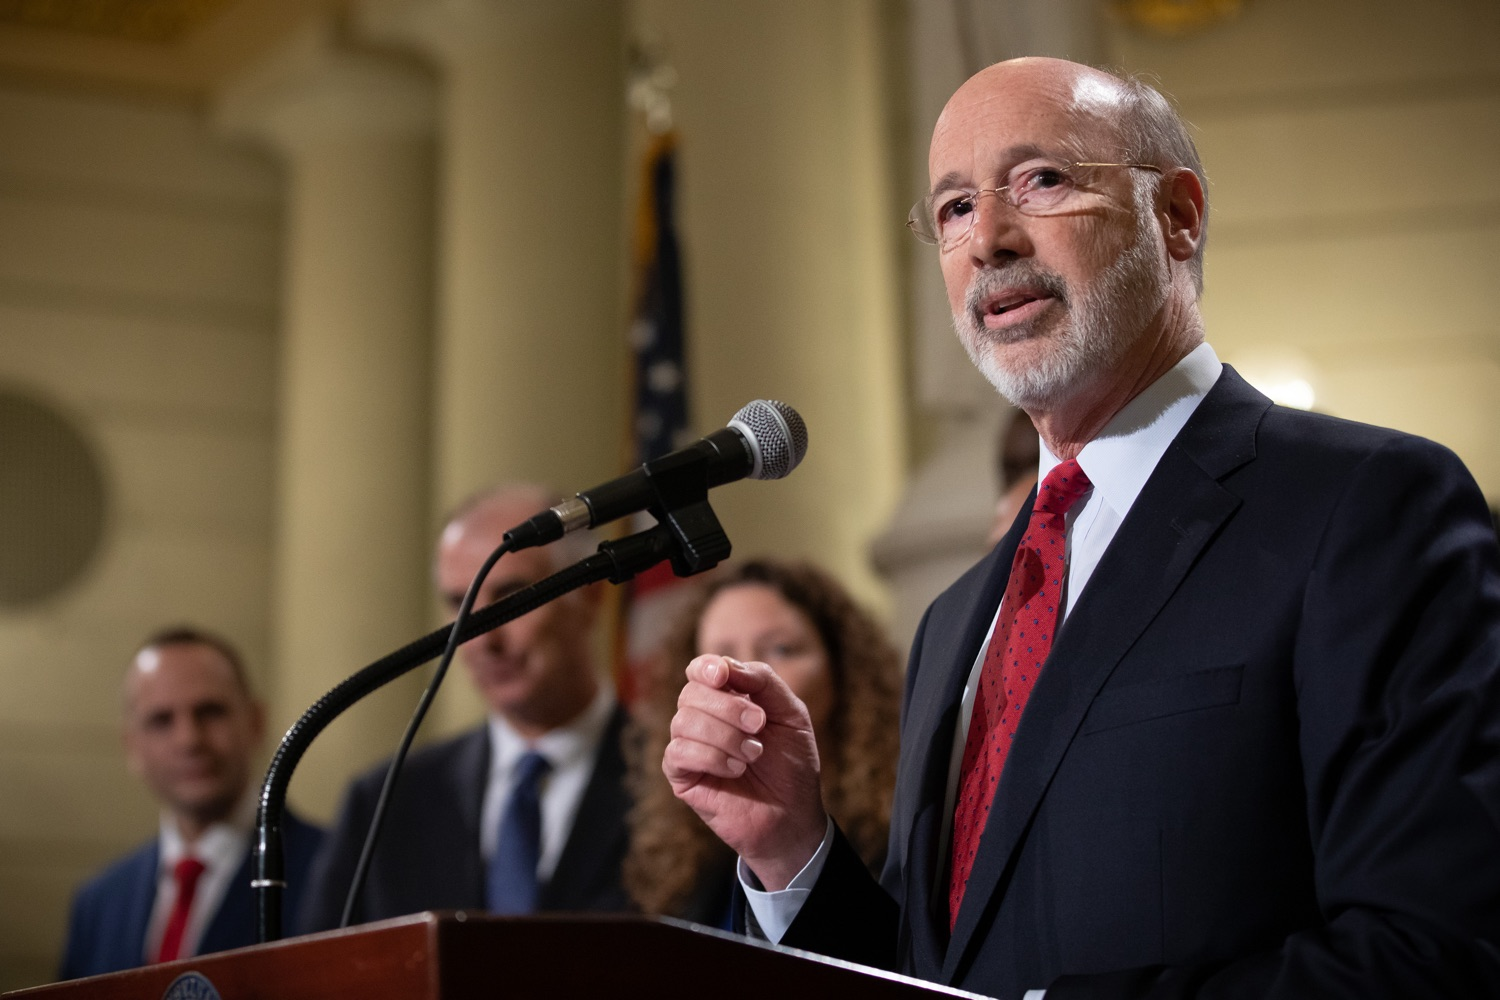 """<a href=""""https://filesource.wostreaming.net/commonwealthofpa/photo/17601_gov_right_on_crime_dz_009.jpg"""" target=""""_blank"""">⇣Download Photo<br></a>Governor Tom Wolf speaking at the event. Governor Tom Wolf was joined by Deputy Secretary of Corrections Christian Stephens and national criminal justice reform advocates today in the Capitol Rotunda to push for commonsense probation reforms that address probation sentences and probation lengths.  Harrisburg, PA  November 18, 2019"""